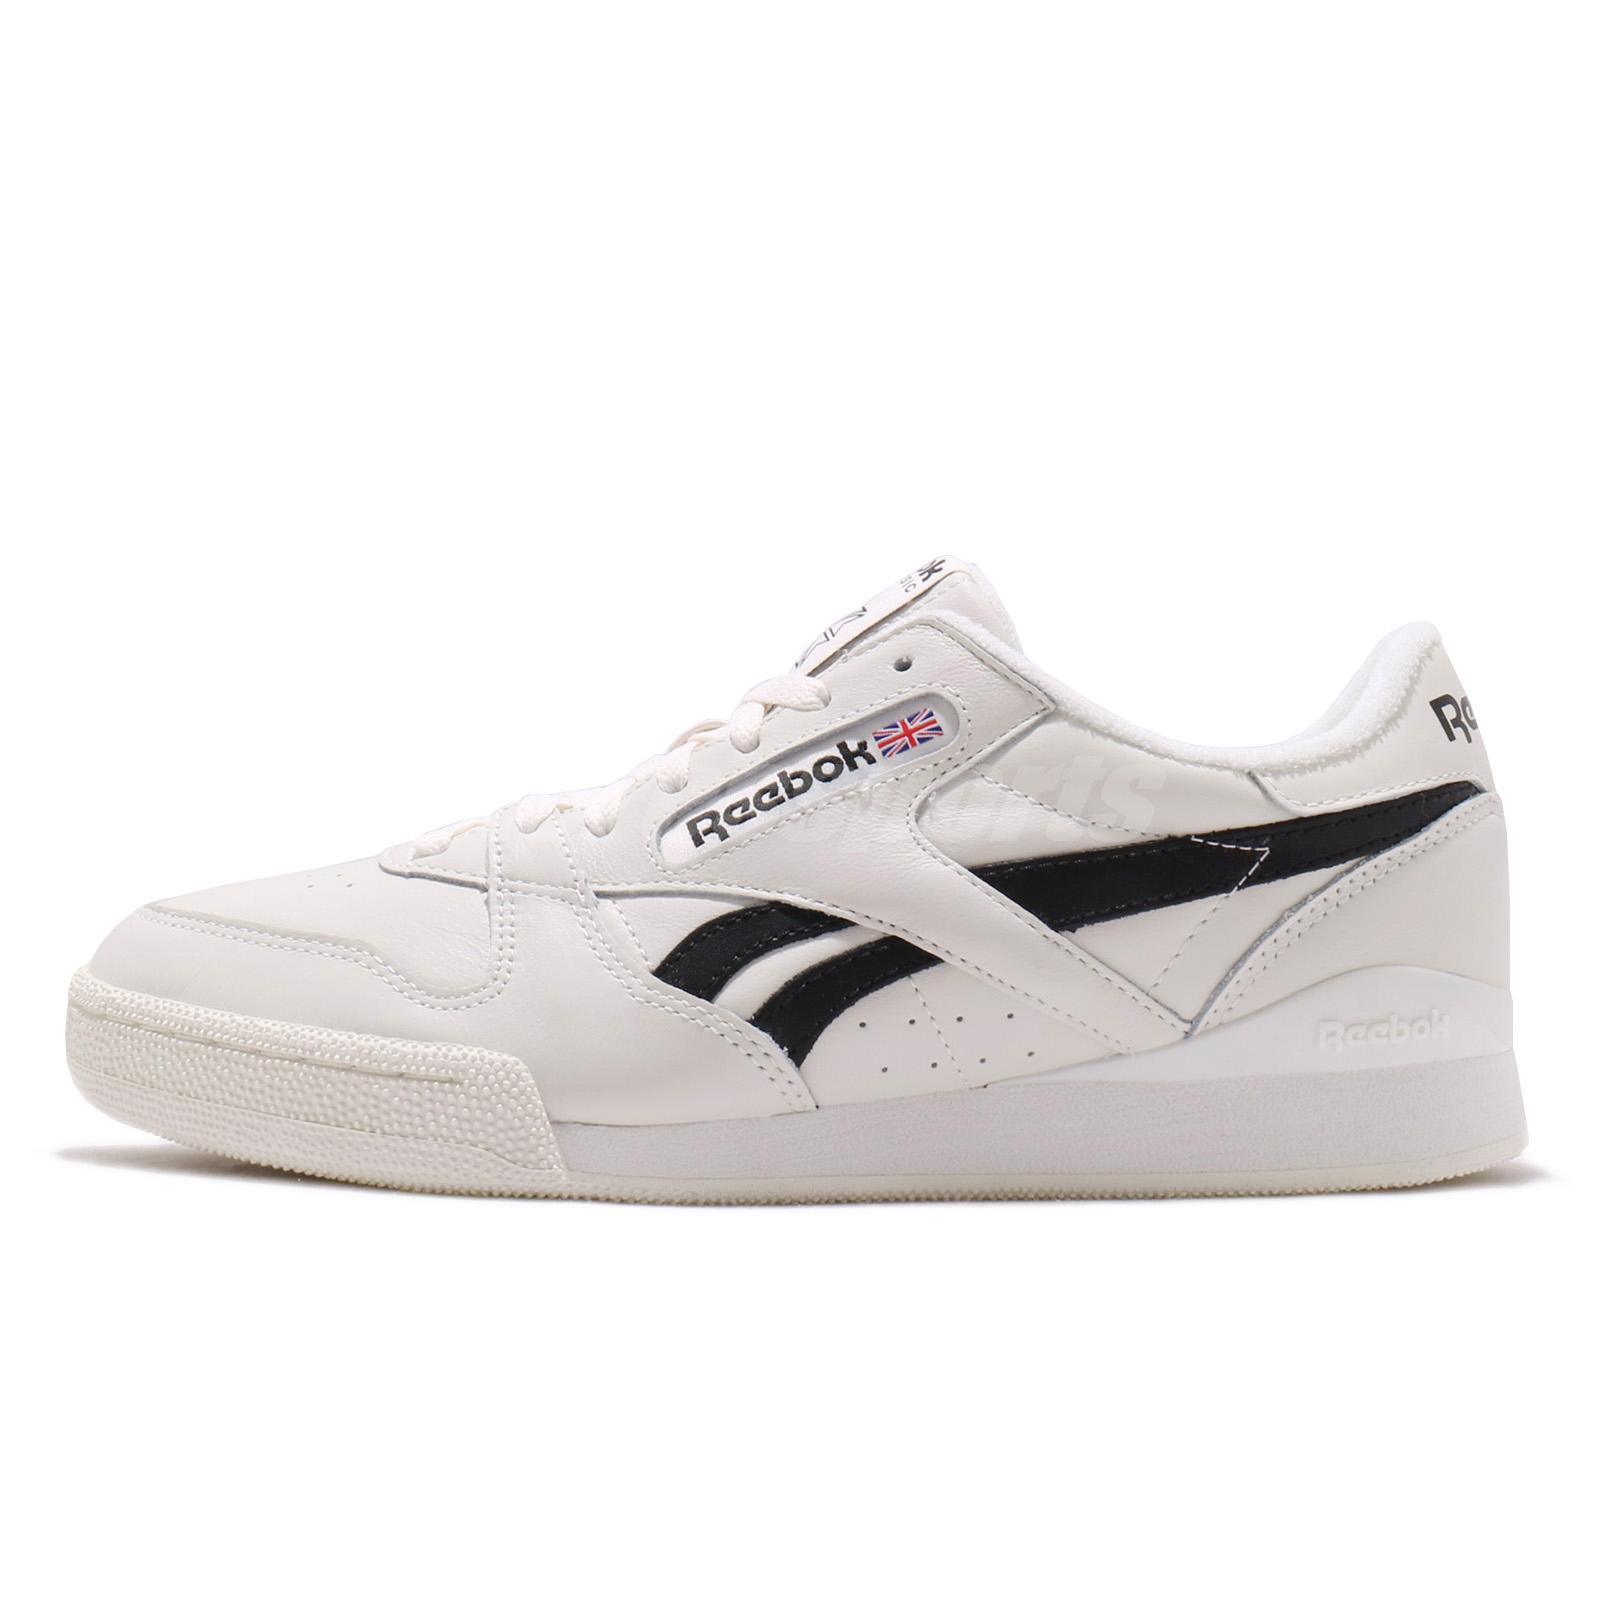 2c7cc80f191 Details about Reebok Phase 1 Pro MU Chalk Black Men Classic Casual Shoes  Sneakers CN3926